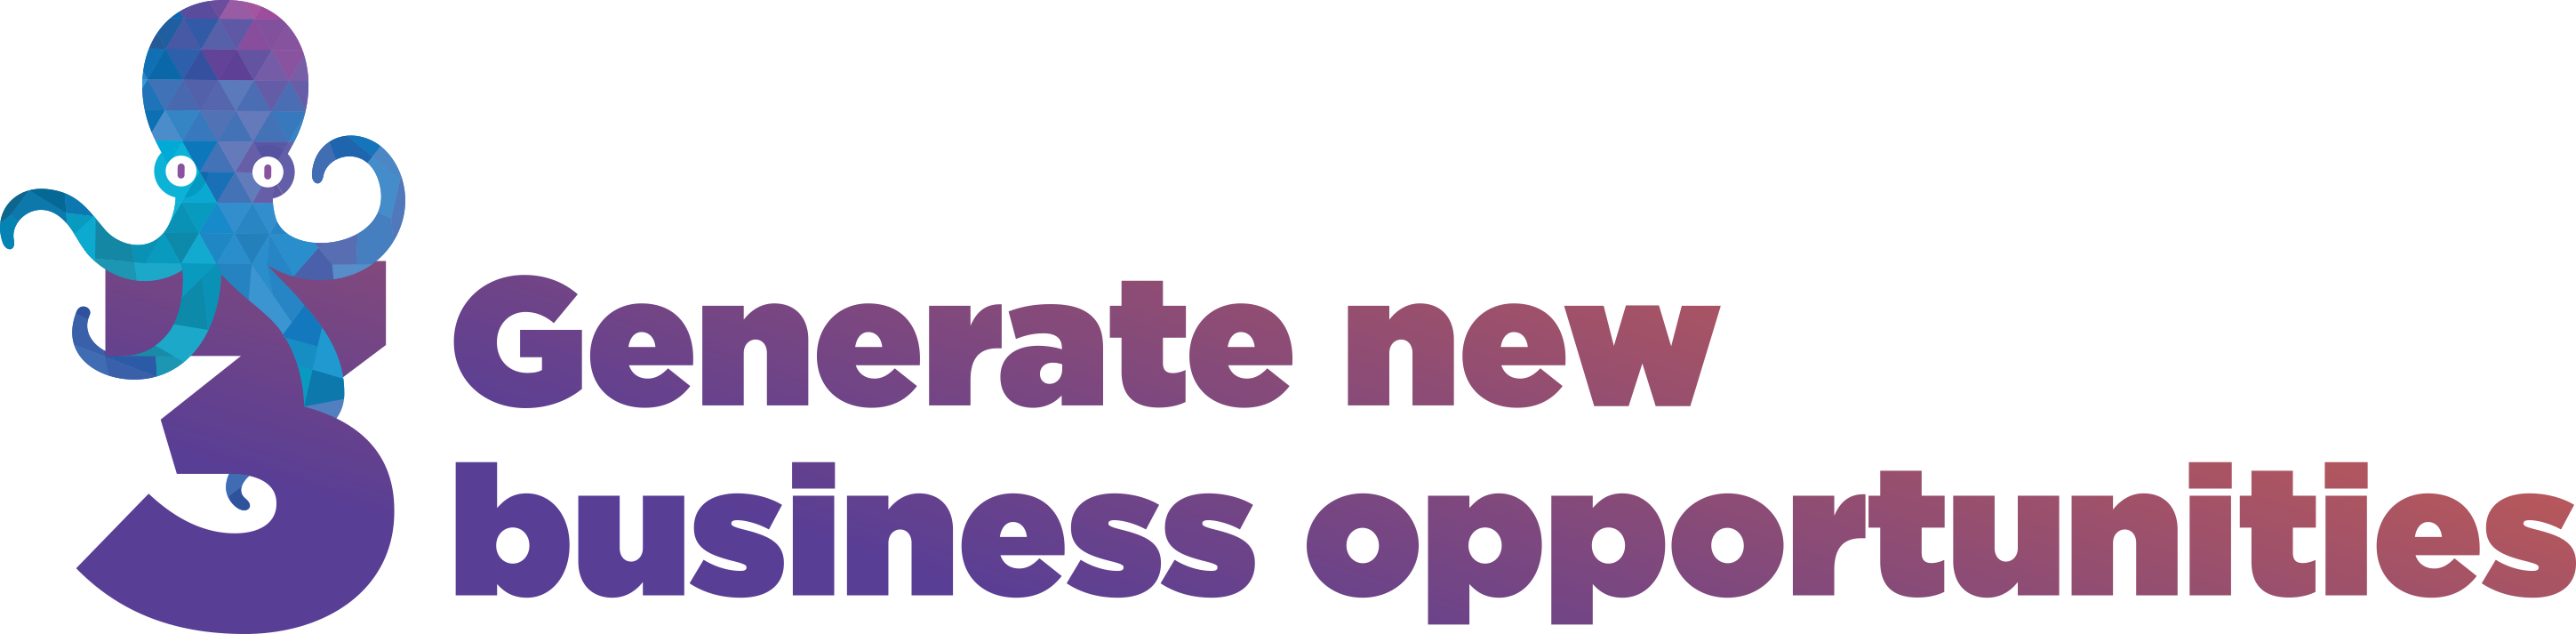 3. Generate new business opportunities